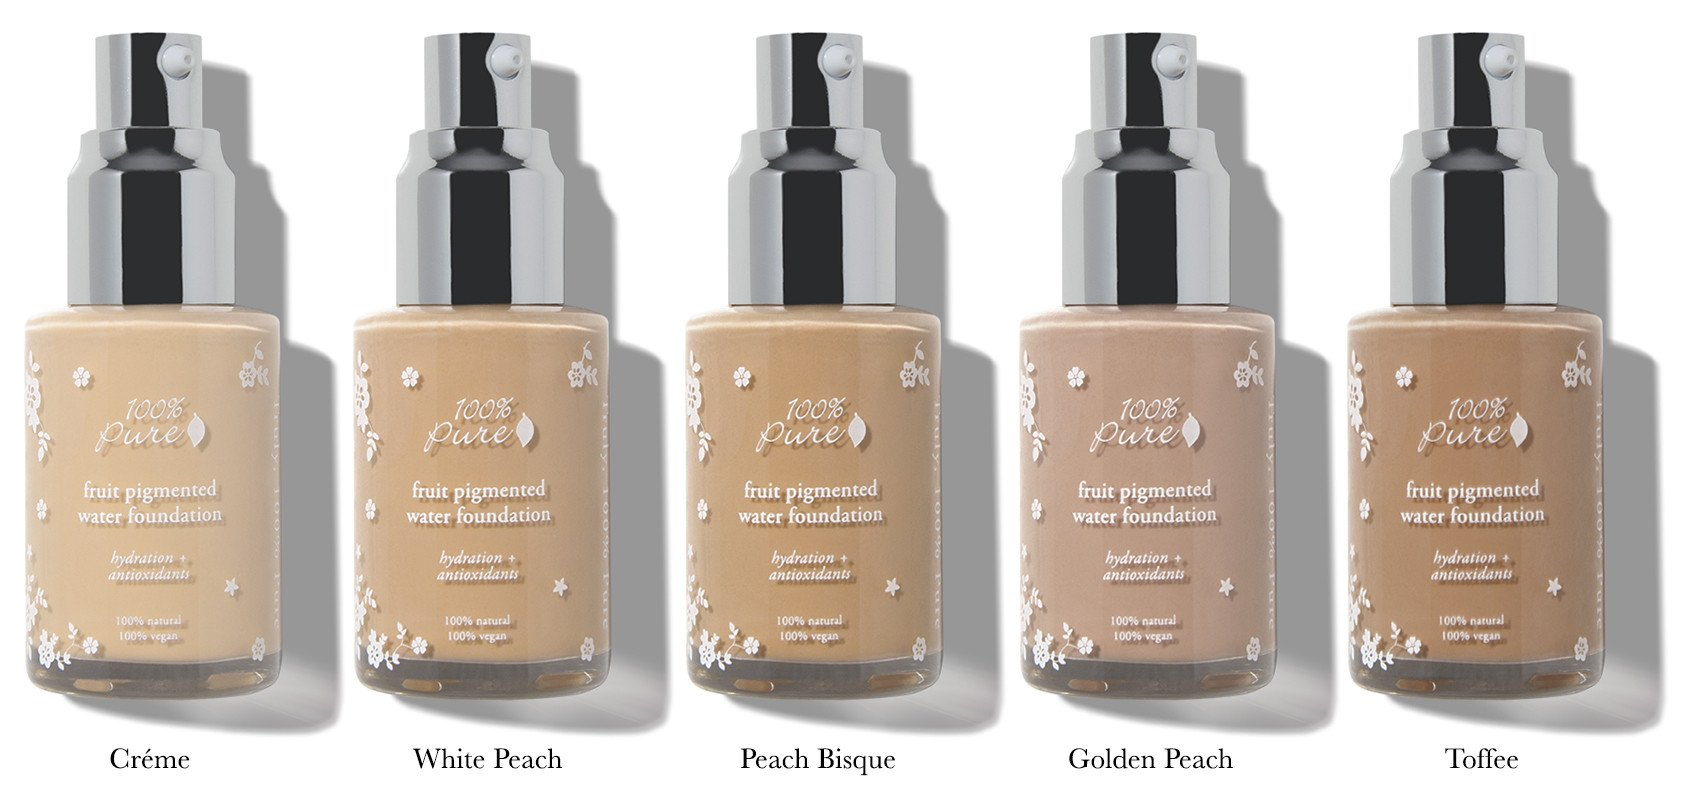 100% Pure Naturkosmetik Foundation / Fruit Pigmented Water Foundation